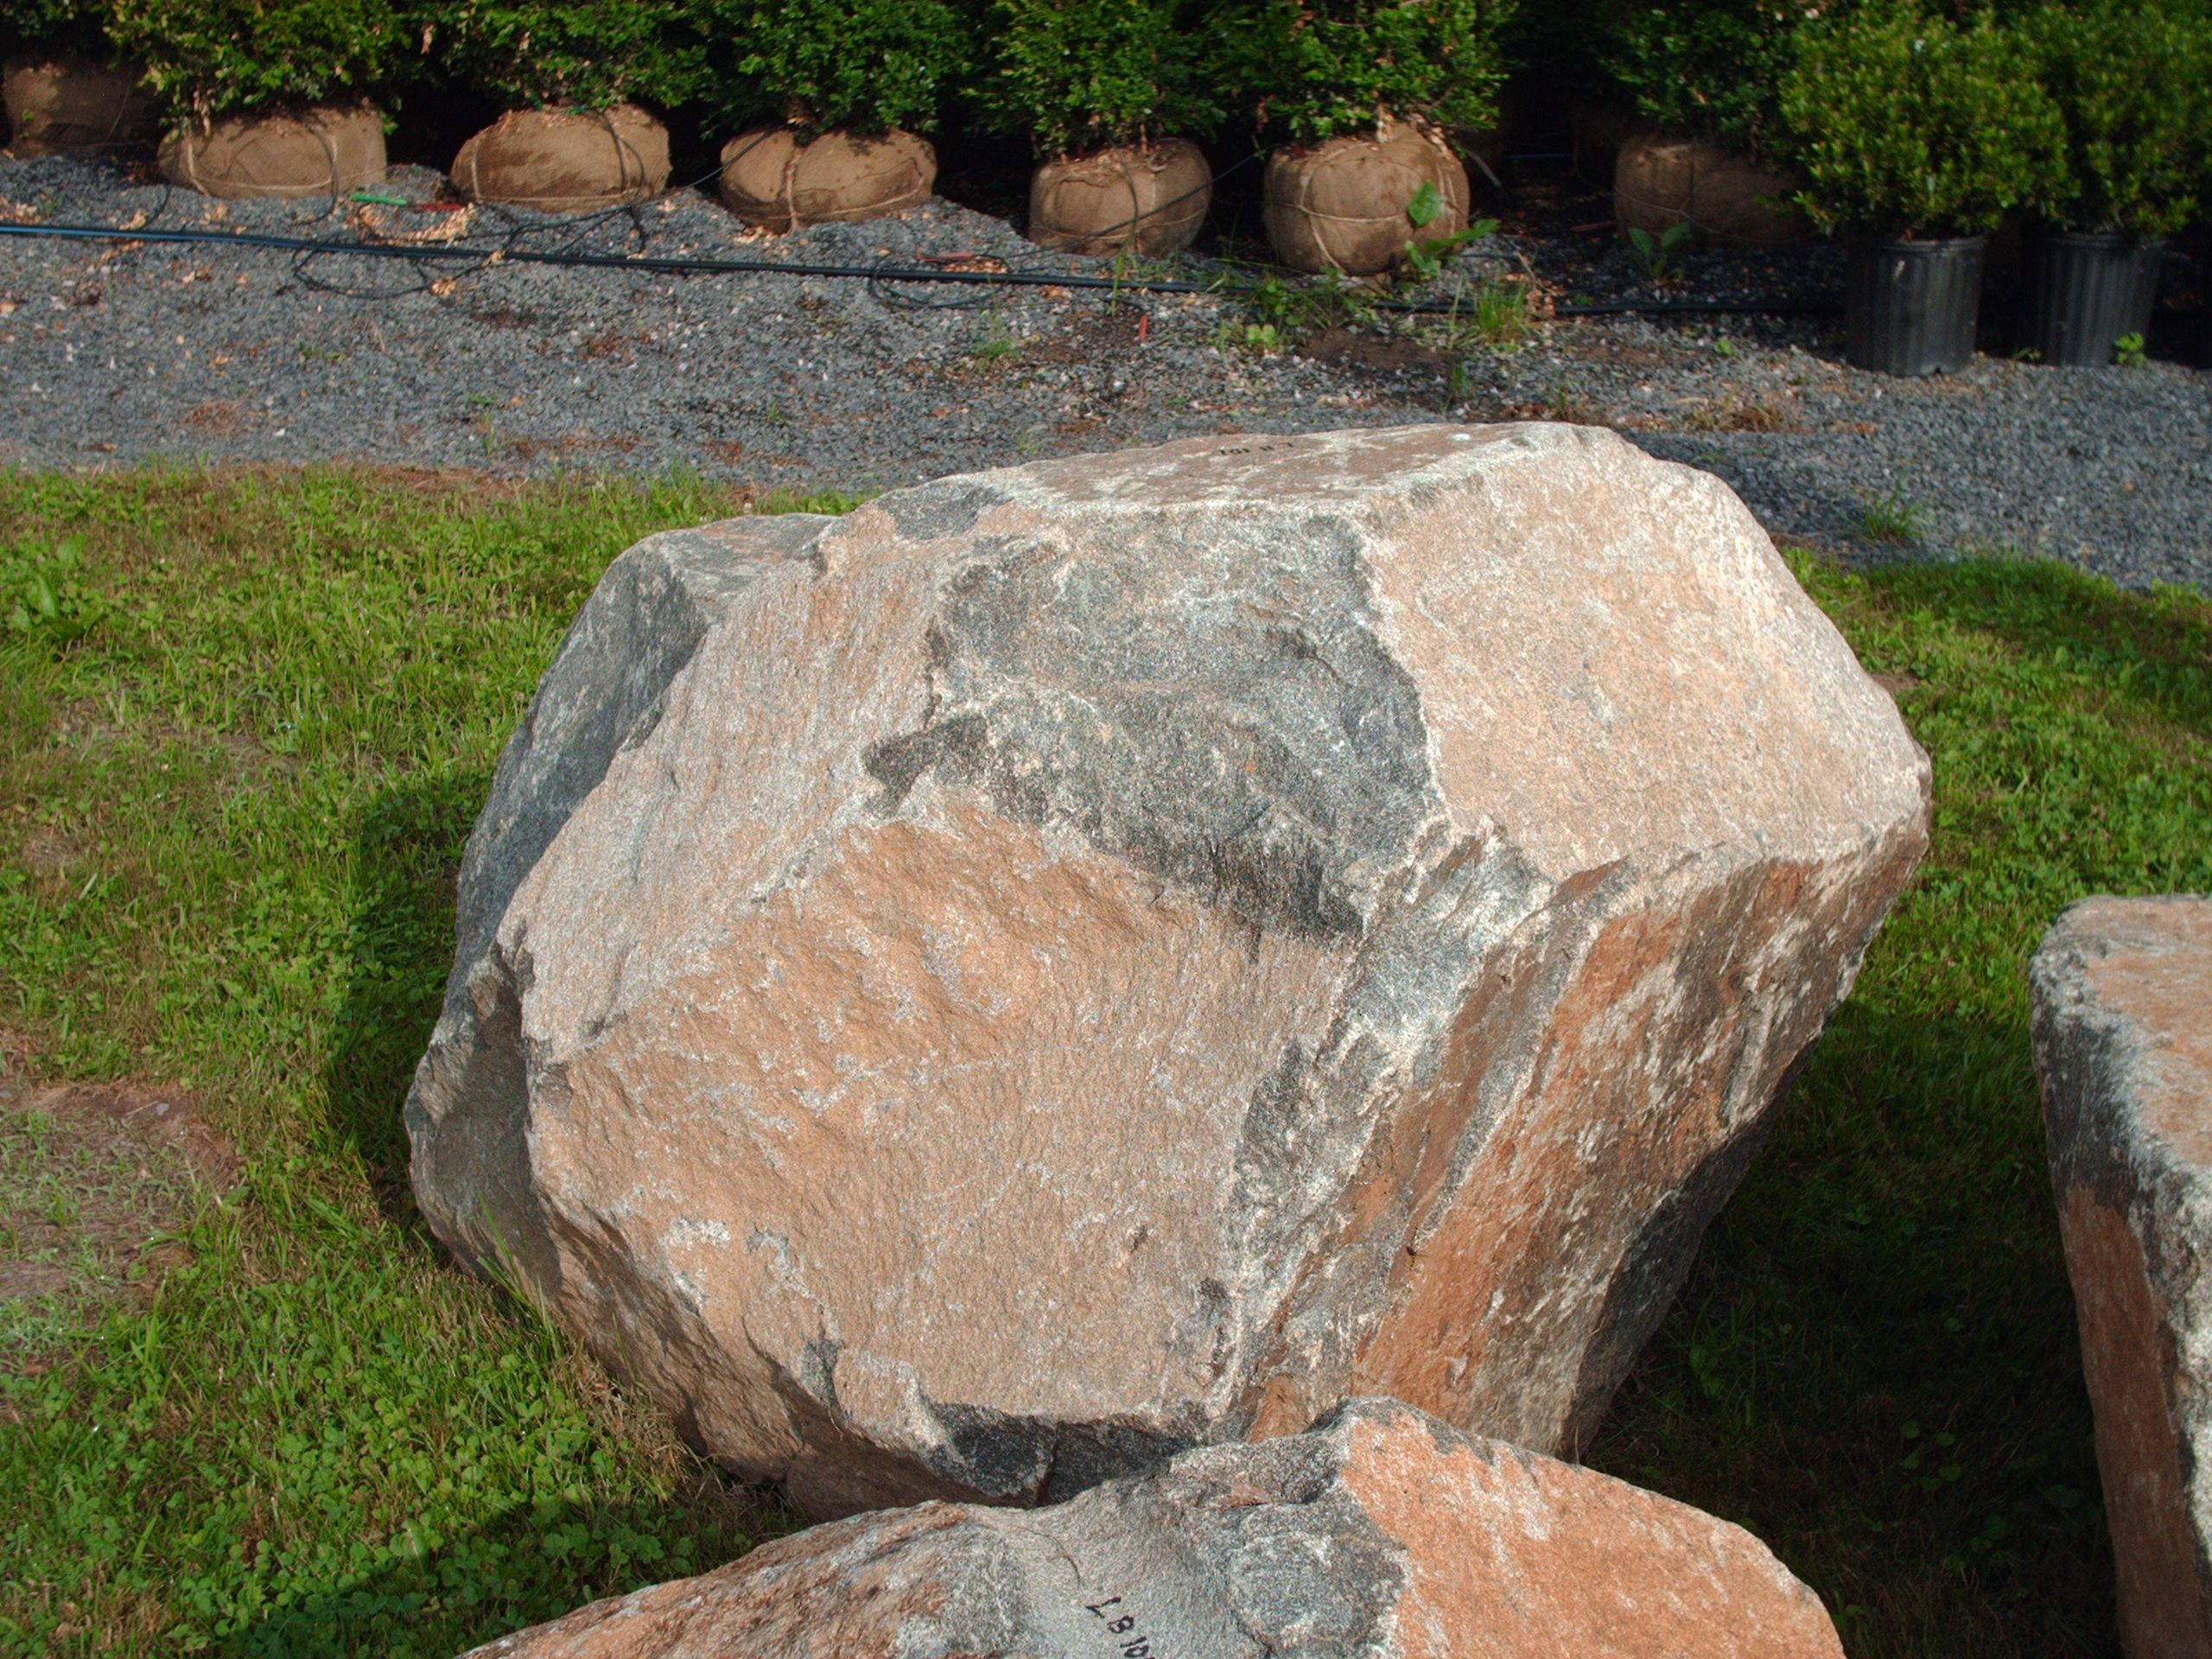 How To Build Large Landscaping Rocks Landscaping Design Ideas Landscaping With Boulders Landscaping With Large Rocks Landscaping With Rocks